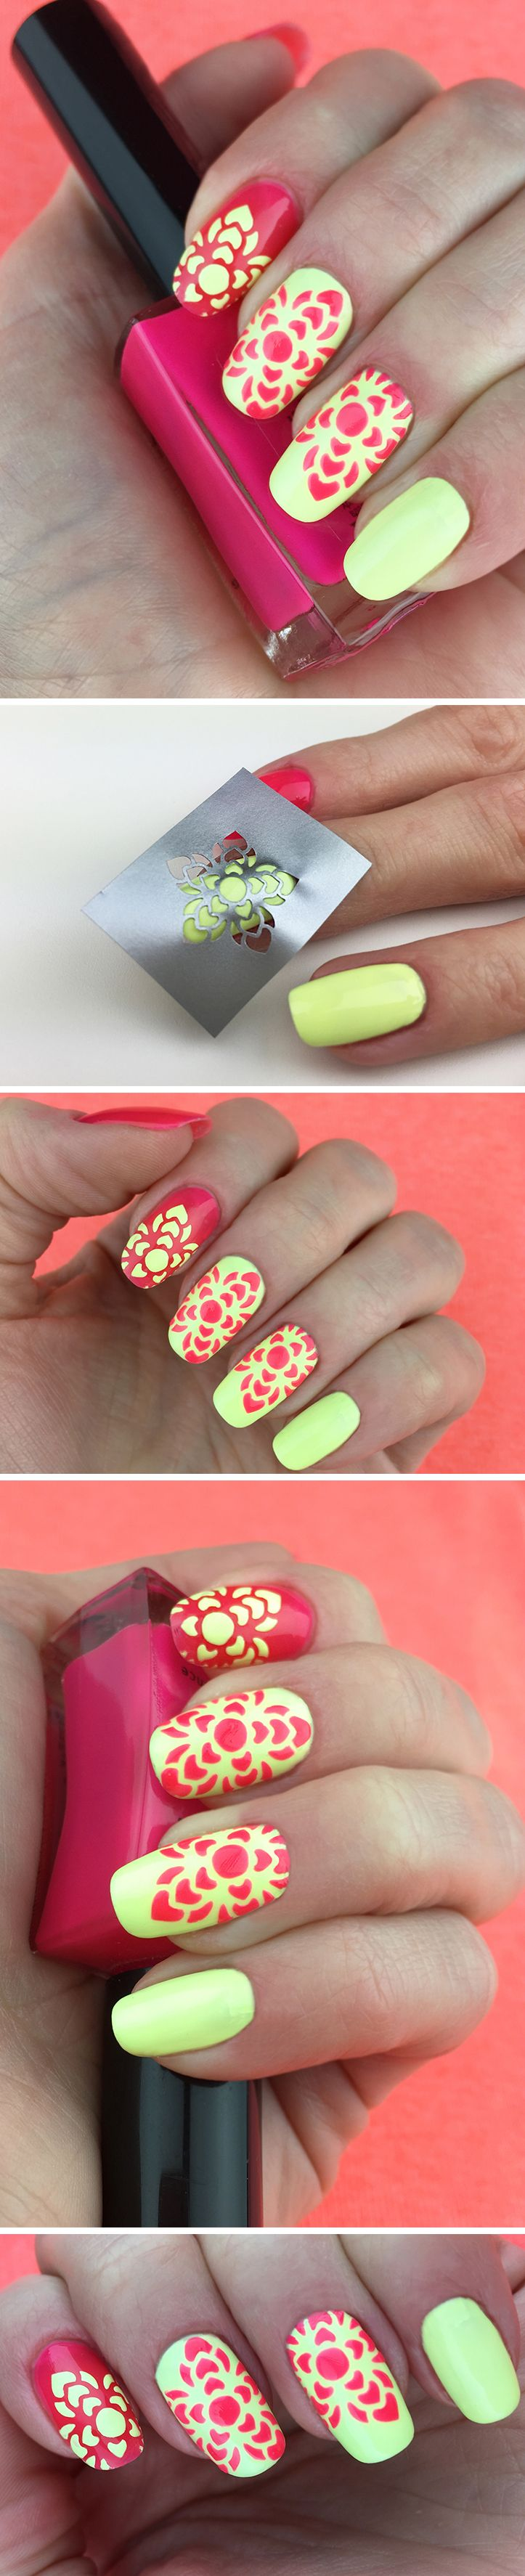 "Nail Stencils design ""Mehndi"". i need these colors!"